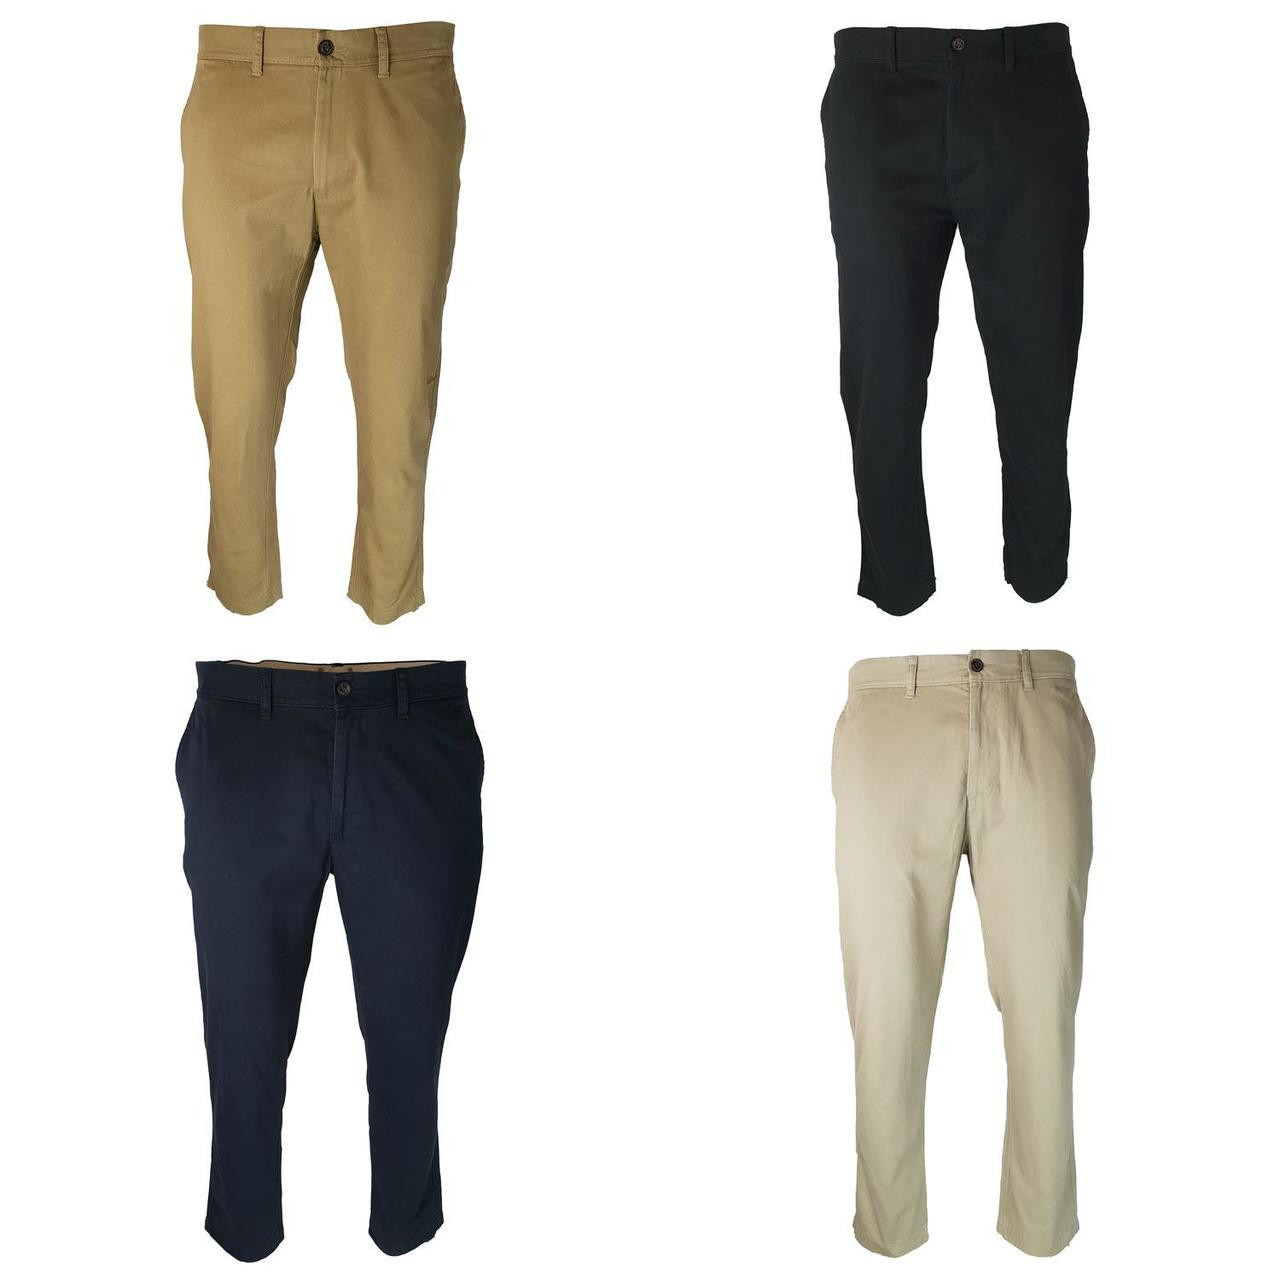 outlet for sale reputable site special price for EX M&S Marks And Spencer Slim Fit Pure Cotton Chinos Trousers